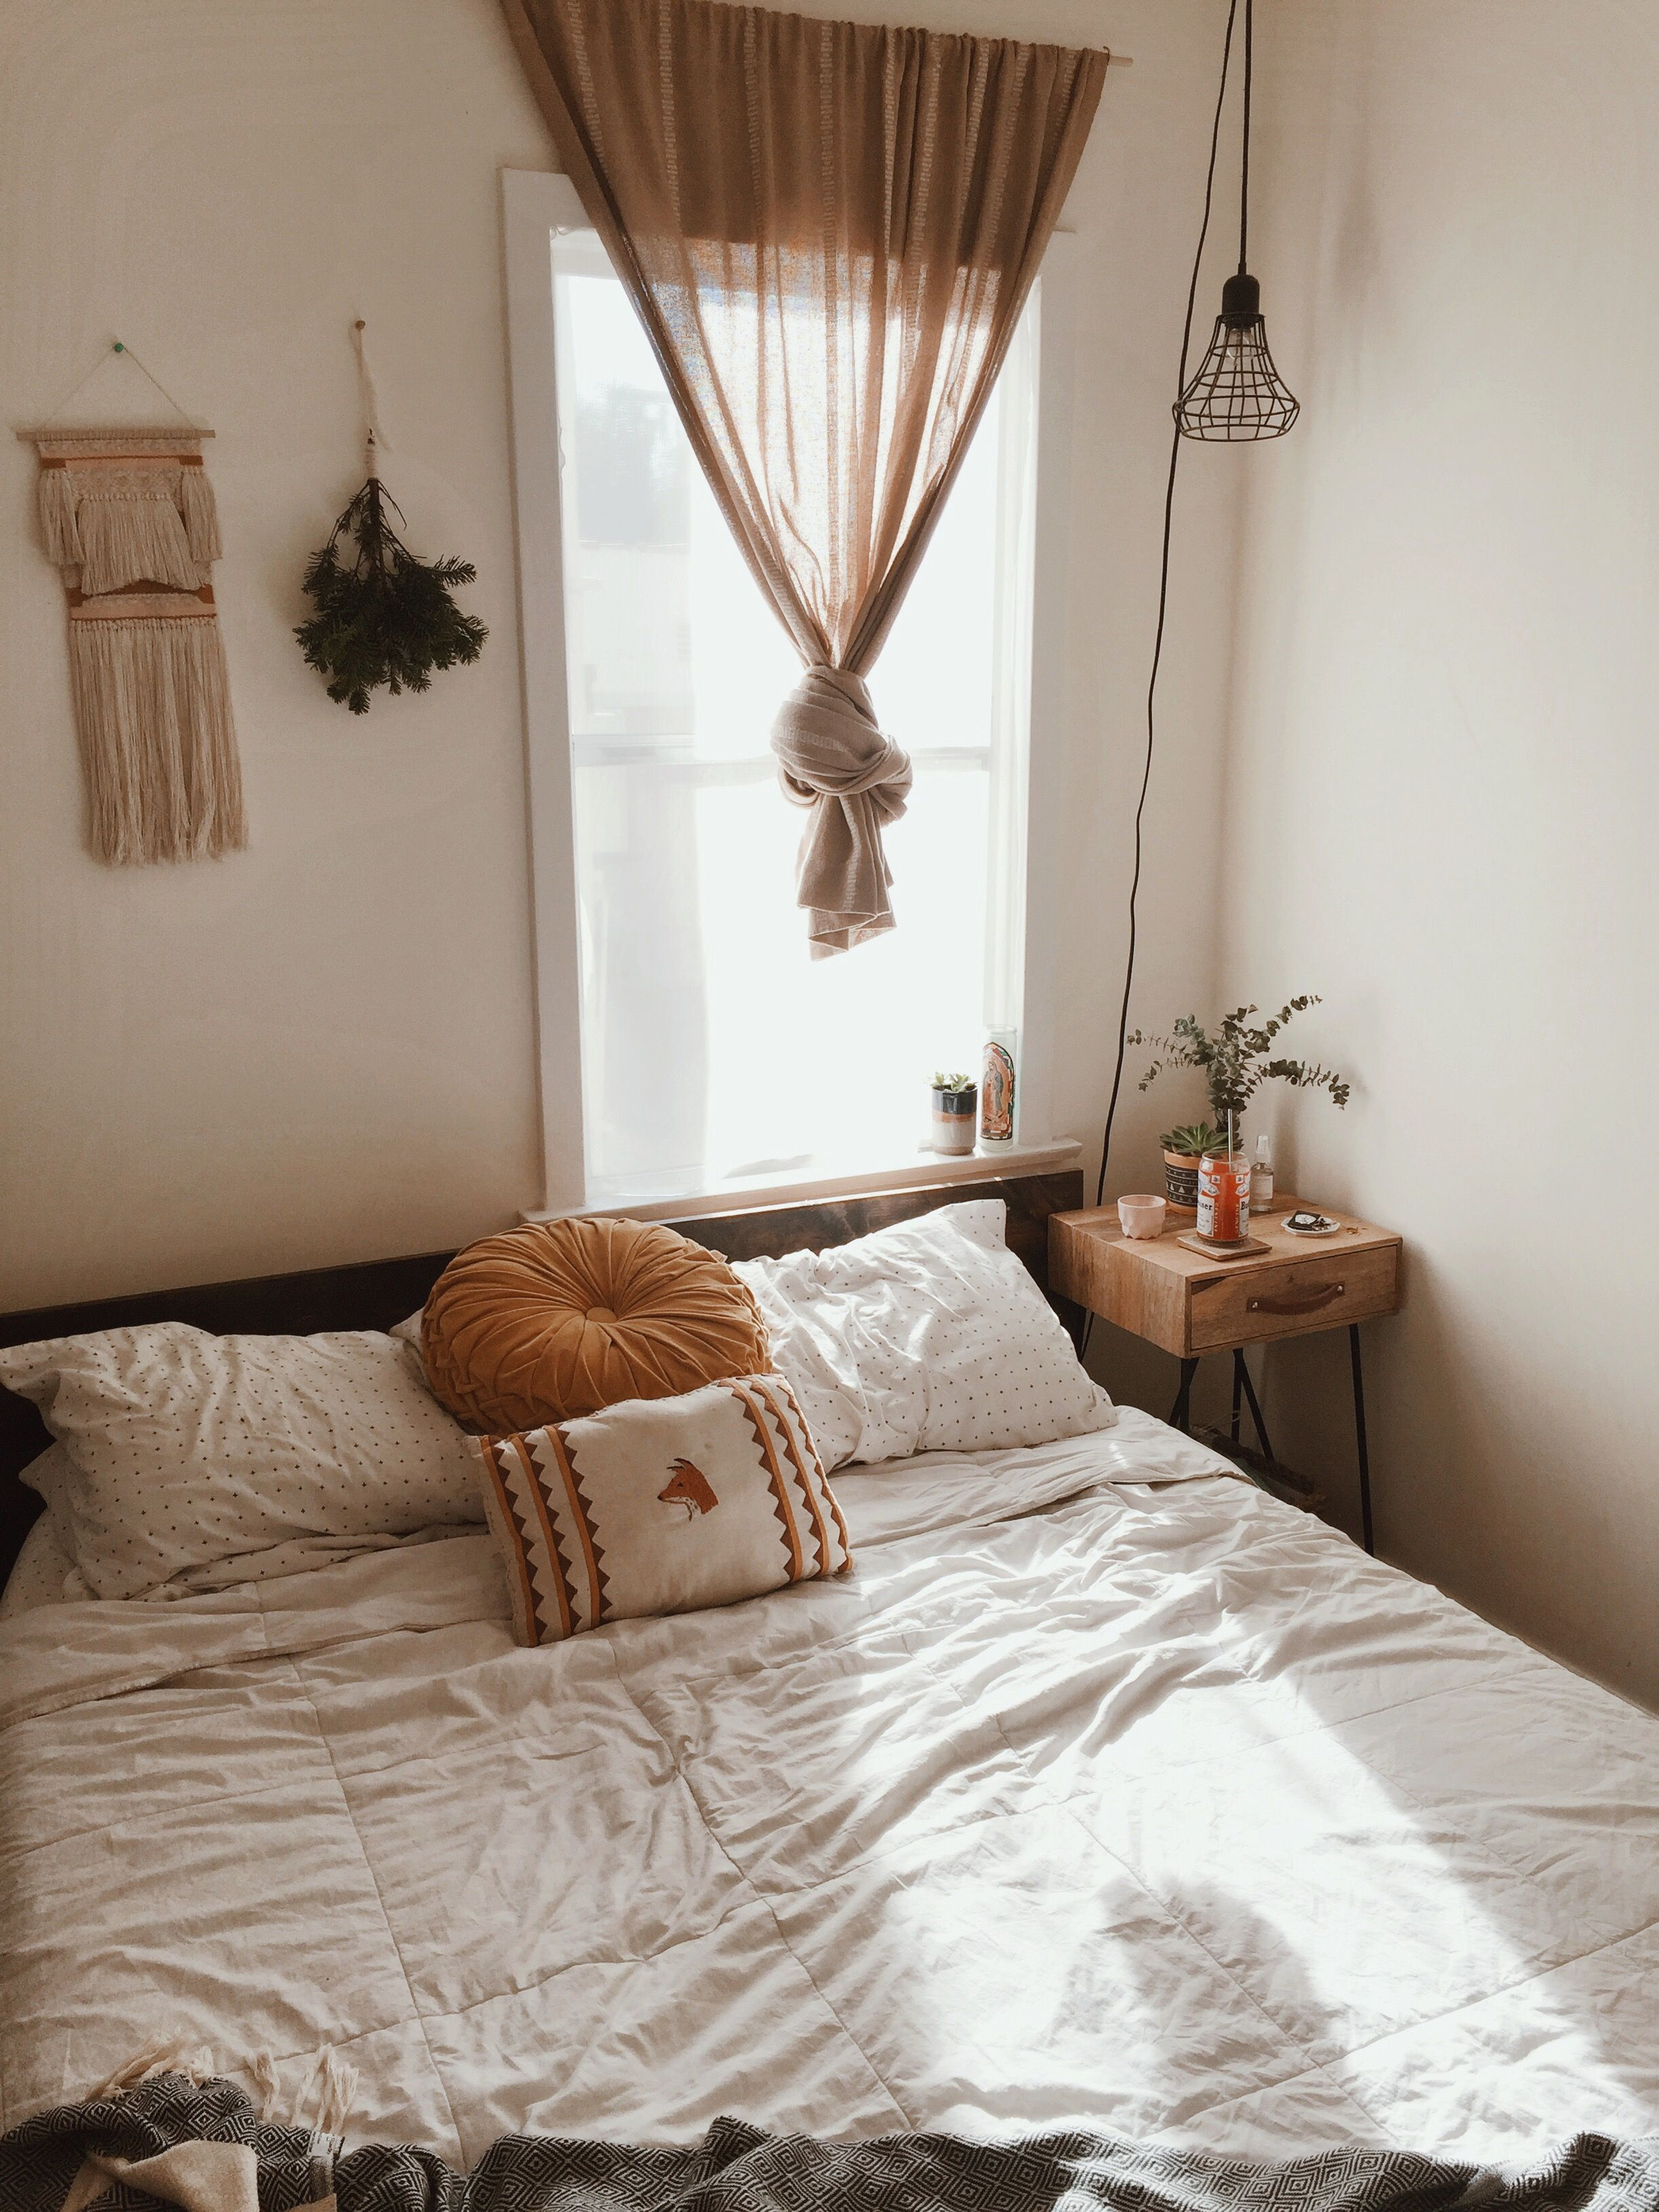 Uo interviews dream rooms bedroom in 2019 bedroom dream rooms room Urban outfitters bedroom lookbook